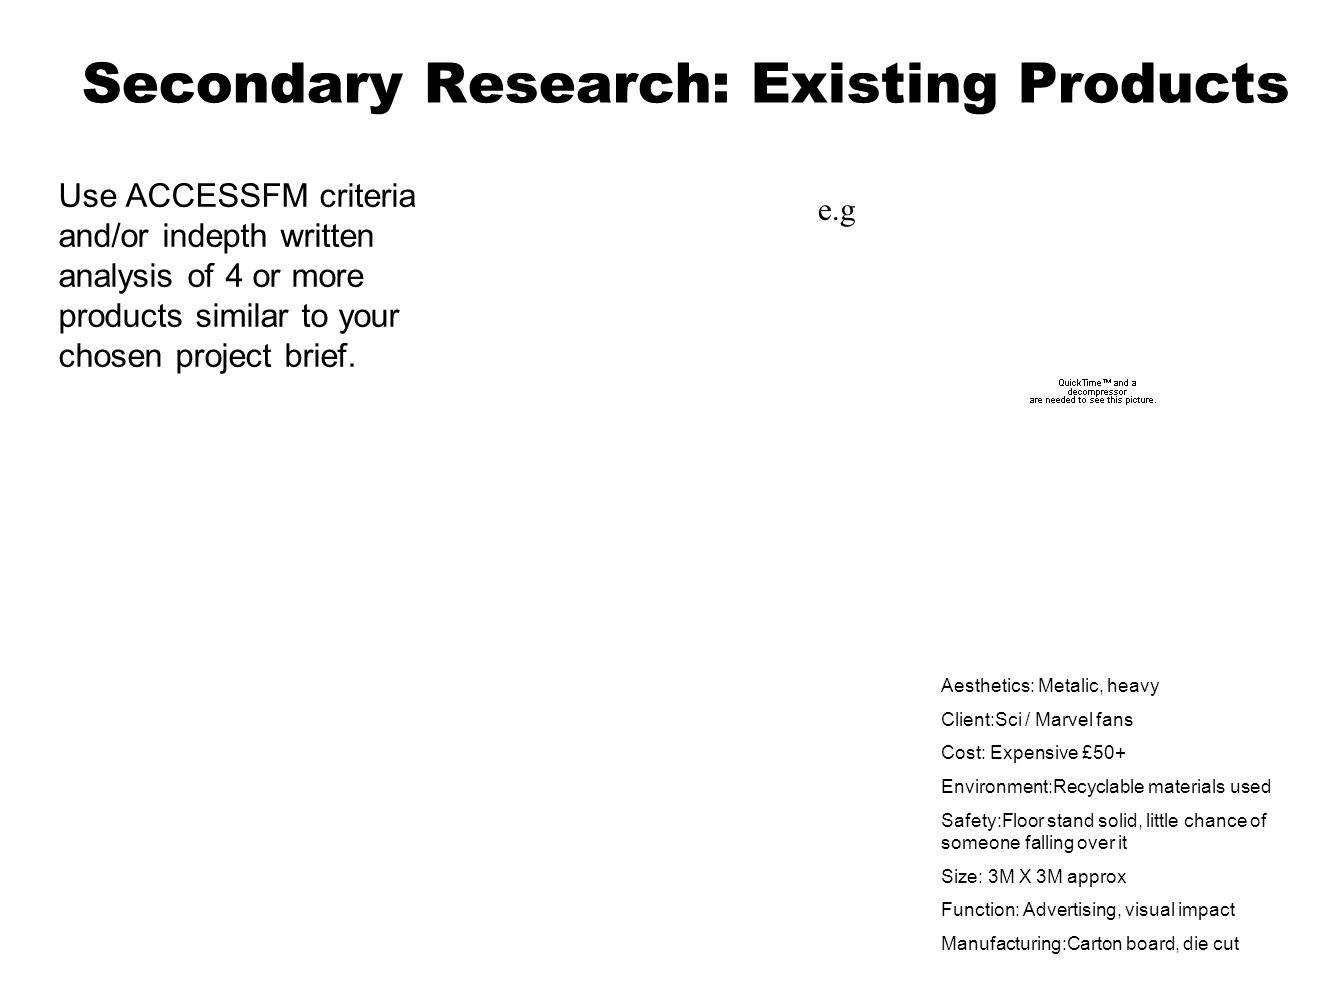 Secondary Research: Existing Products Use ACCESSFM criteria and/or indepth written analysis of 4 or more products similar to your chosen project brief.